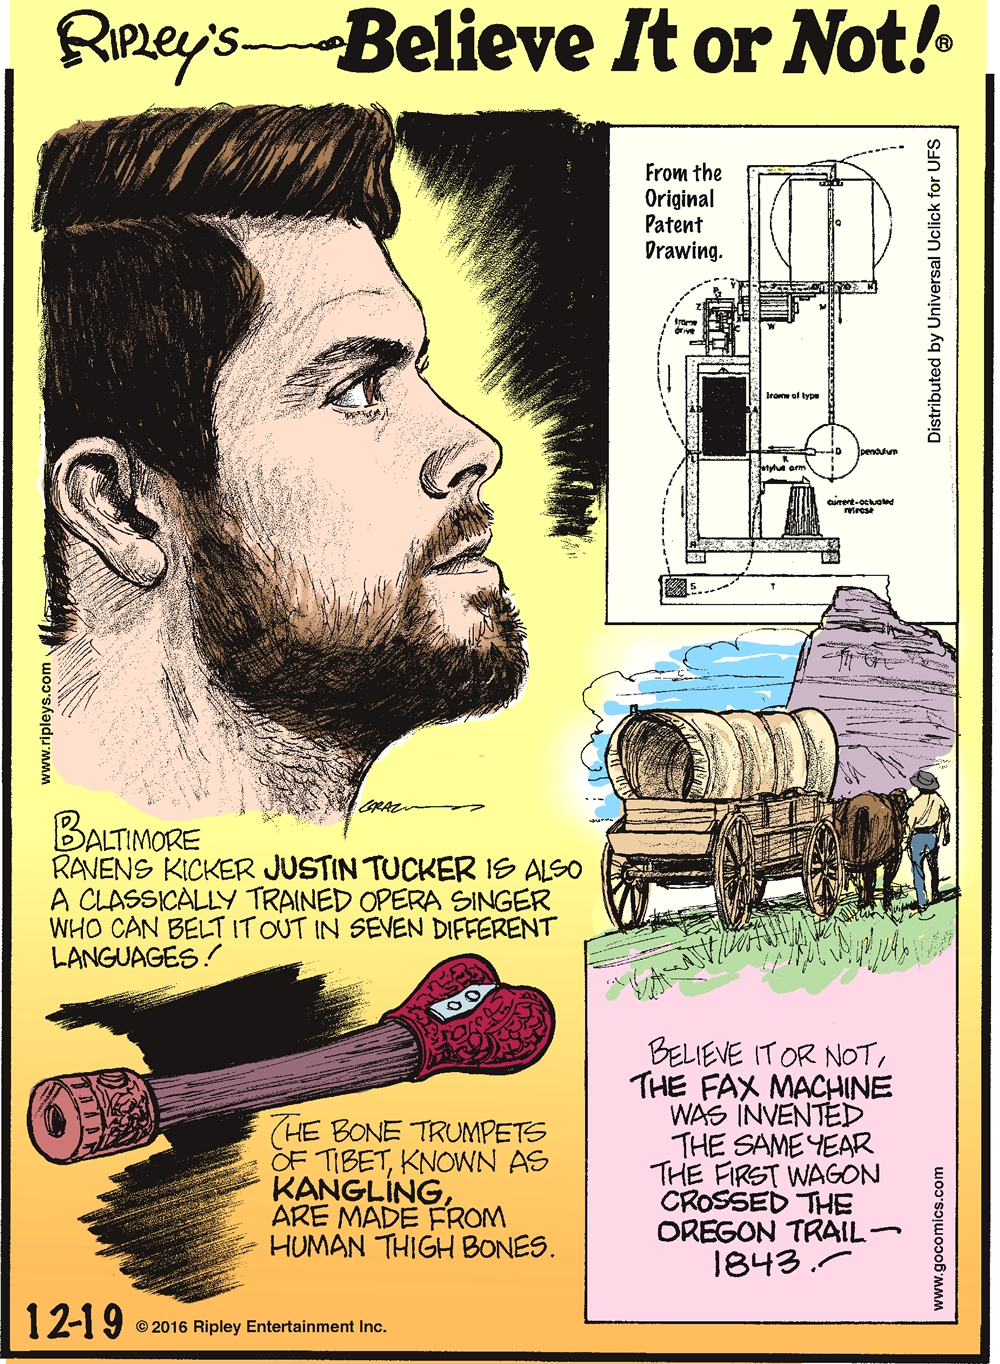 Baltimore Ravens kicker Justin Tucker is also a classically trained opera singer who can belt it out in seven different languages! -------------------- The bone trumpets of Tibet, known as Kangling, are made from human thigh bones. -------------------- Believe it or not, the fax machine was invented the same year the first wagon crossed the Oregon Trail—1843!